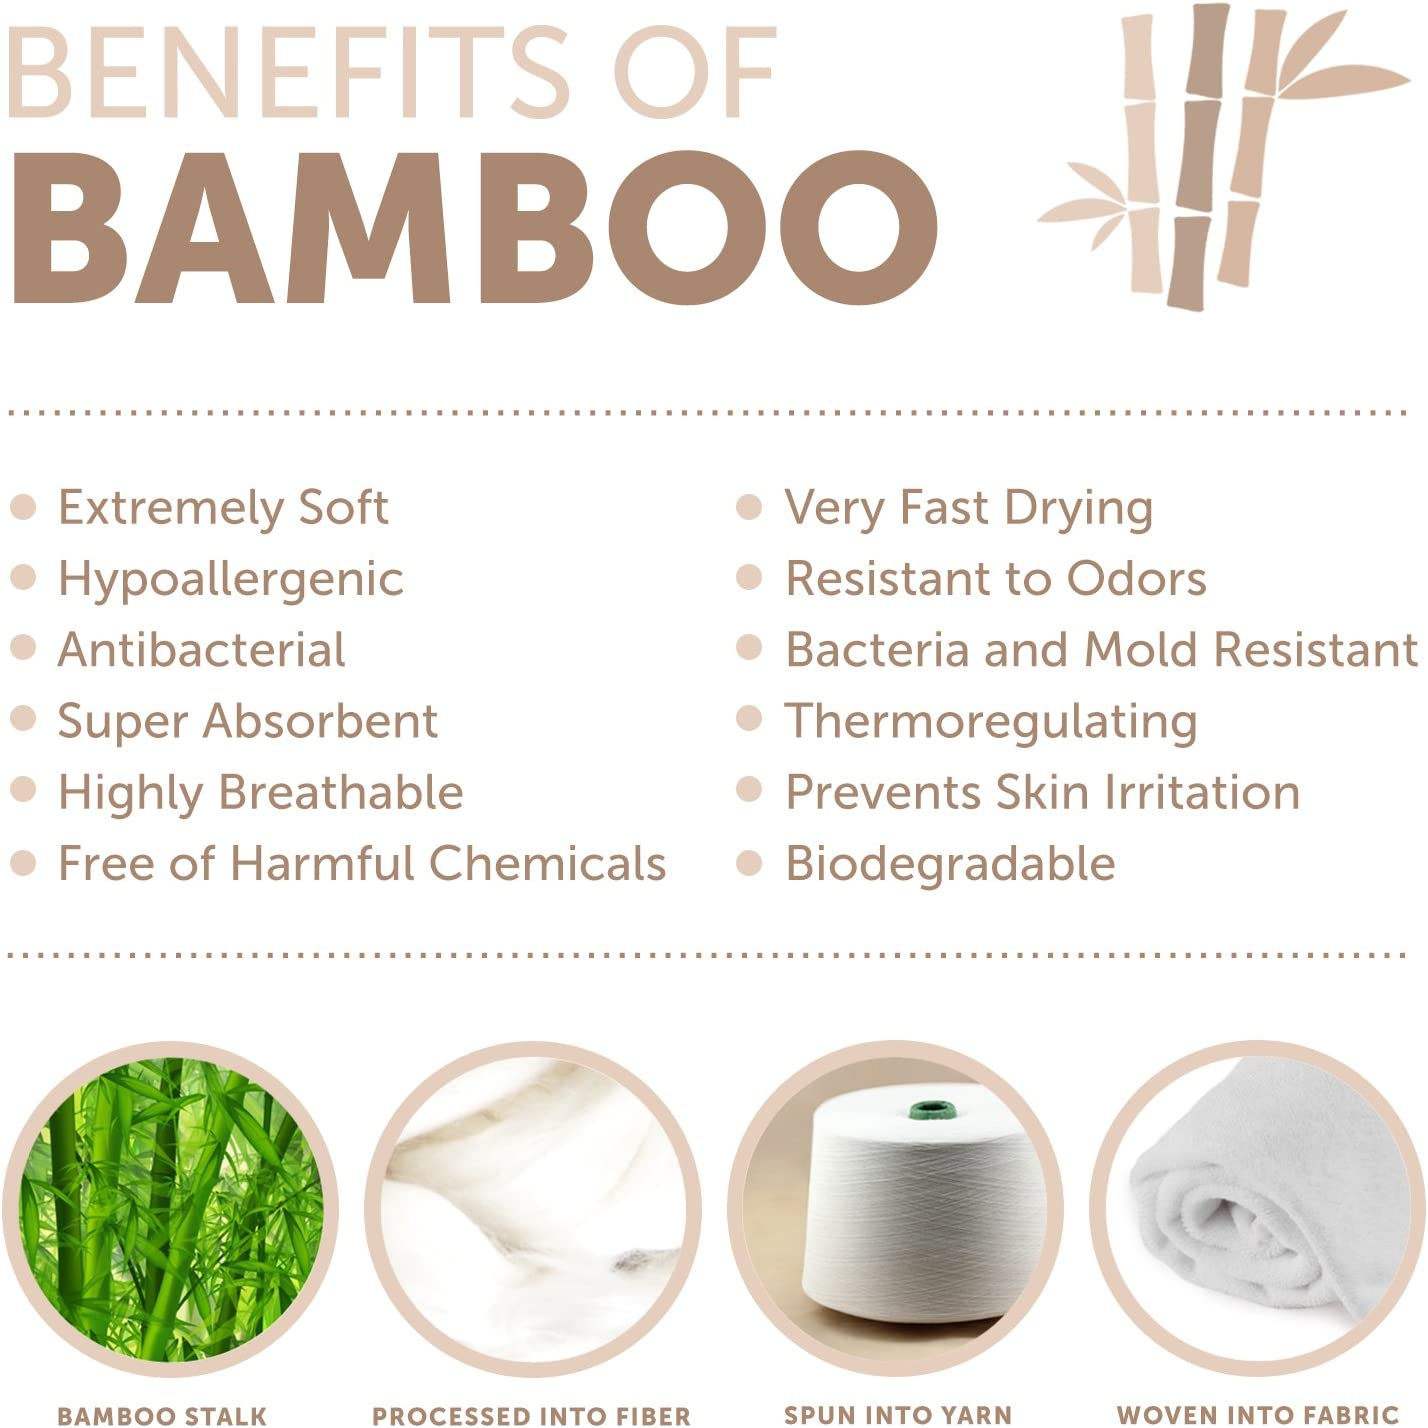 Miniboo Premium Ultra Soft Organic Bamboo Baby Hooded Towel with Unique Design Antibacterial and Hypoallergenic Baby Towels for Infant and Toddler